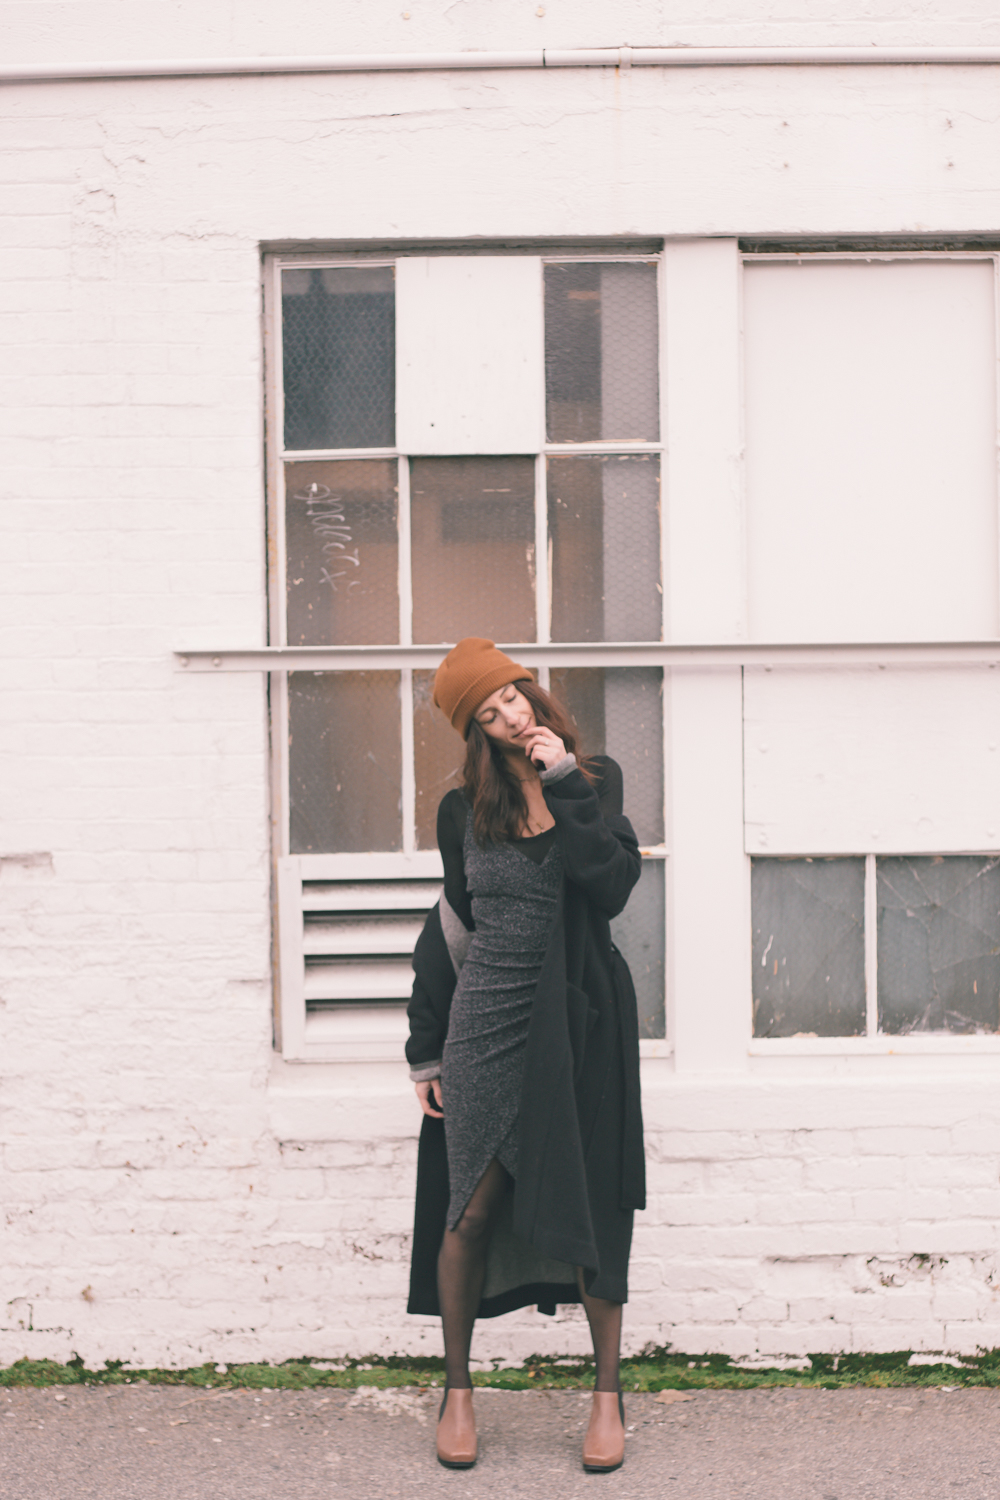 Slip Dresses and how to wear them